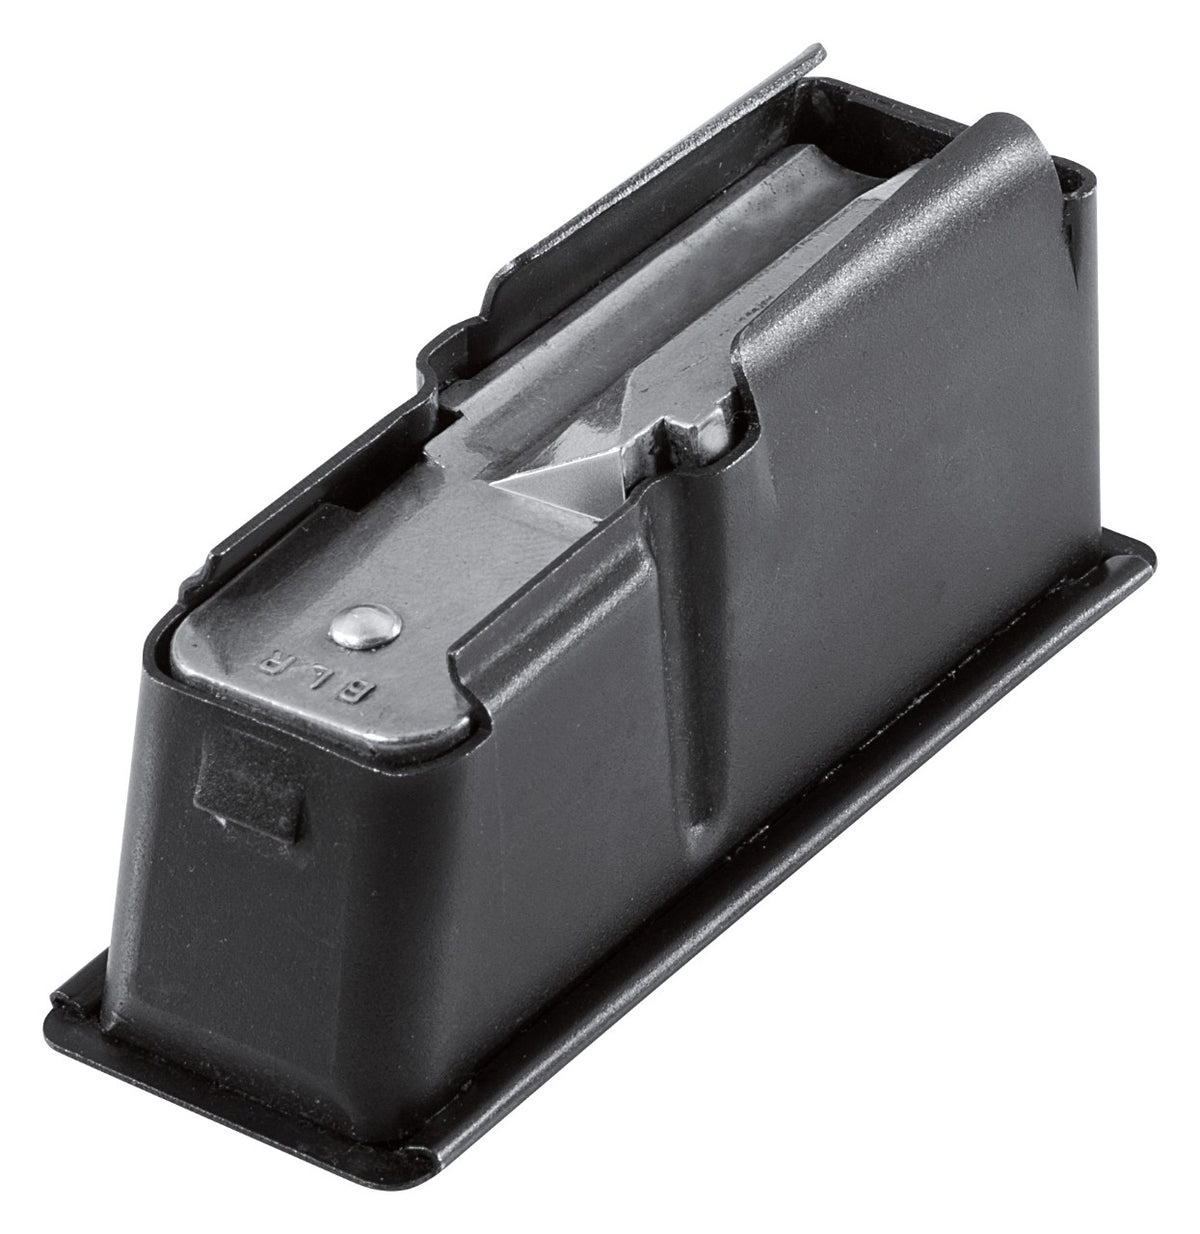 BLR Rifle Magazines